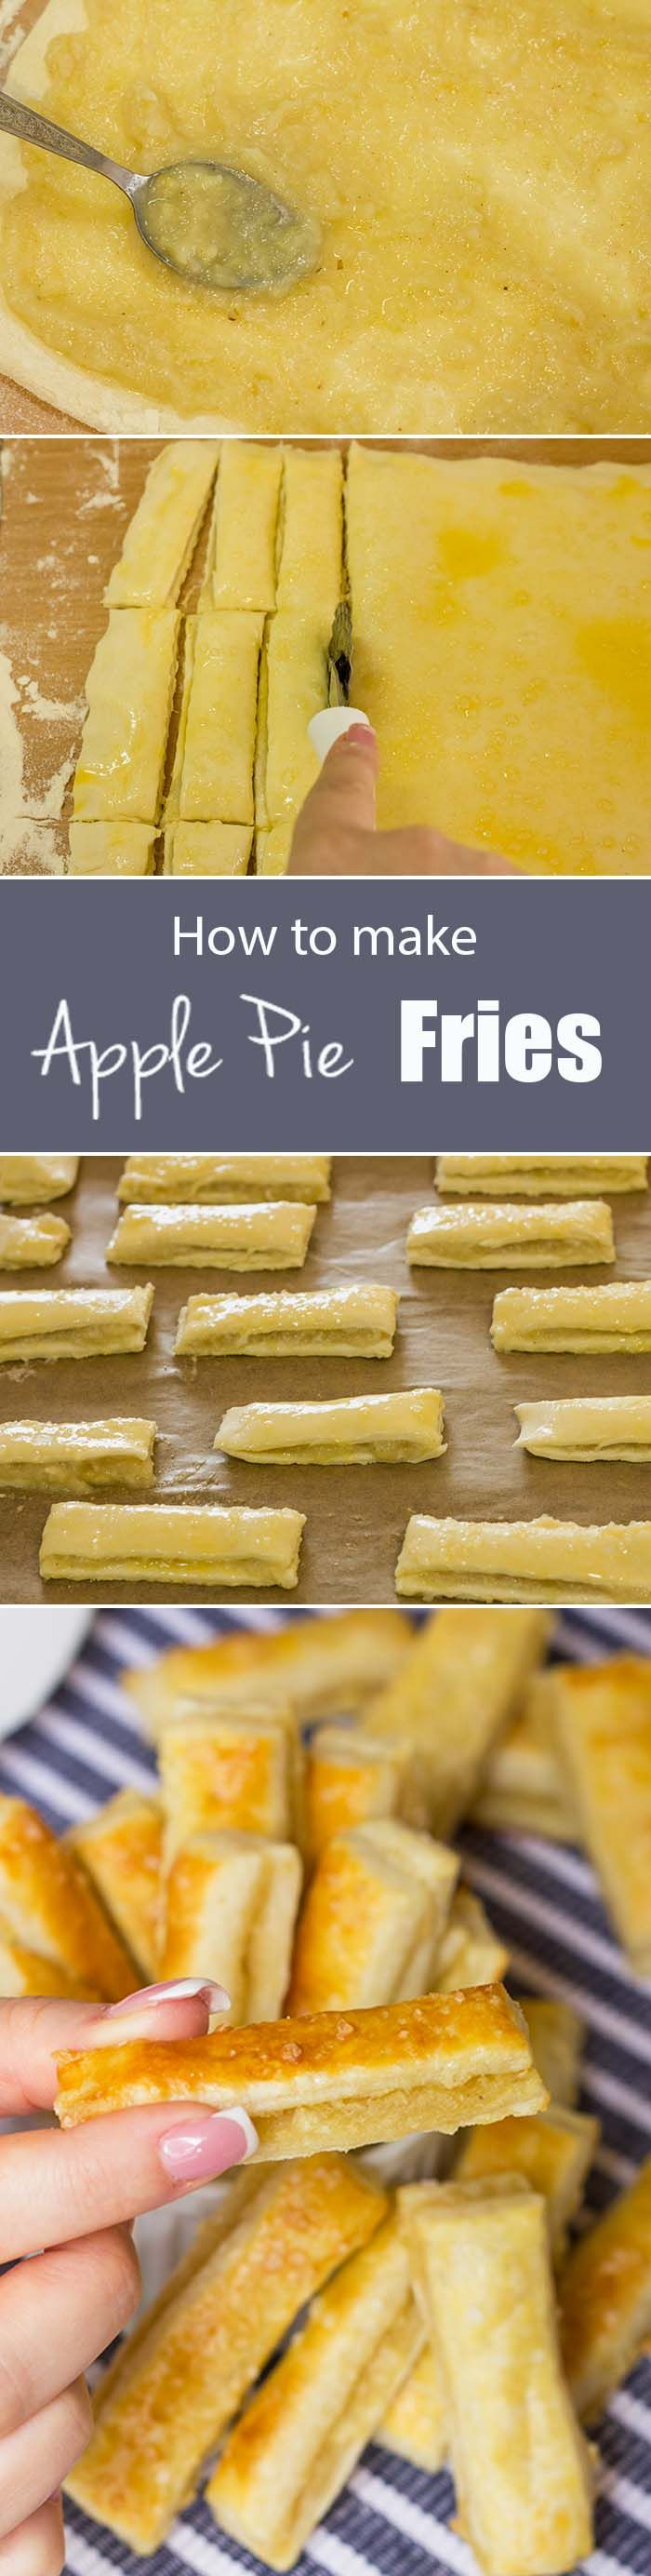 Apple Pie Fries Recipe - Yummy, crispy and healthy apple fries tossed with cinnamon and sugar